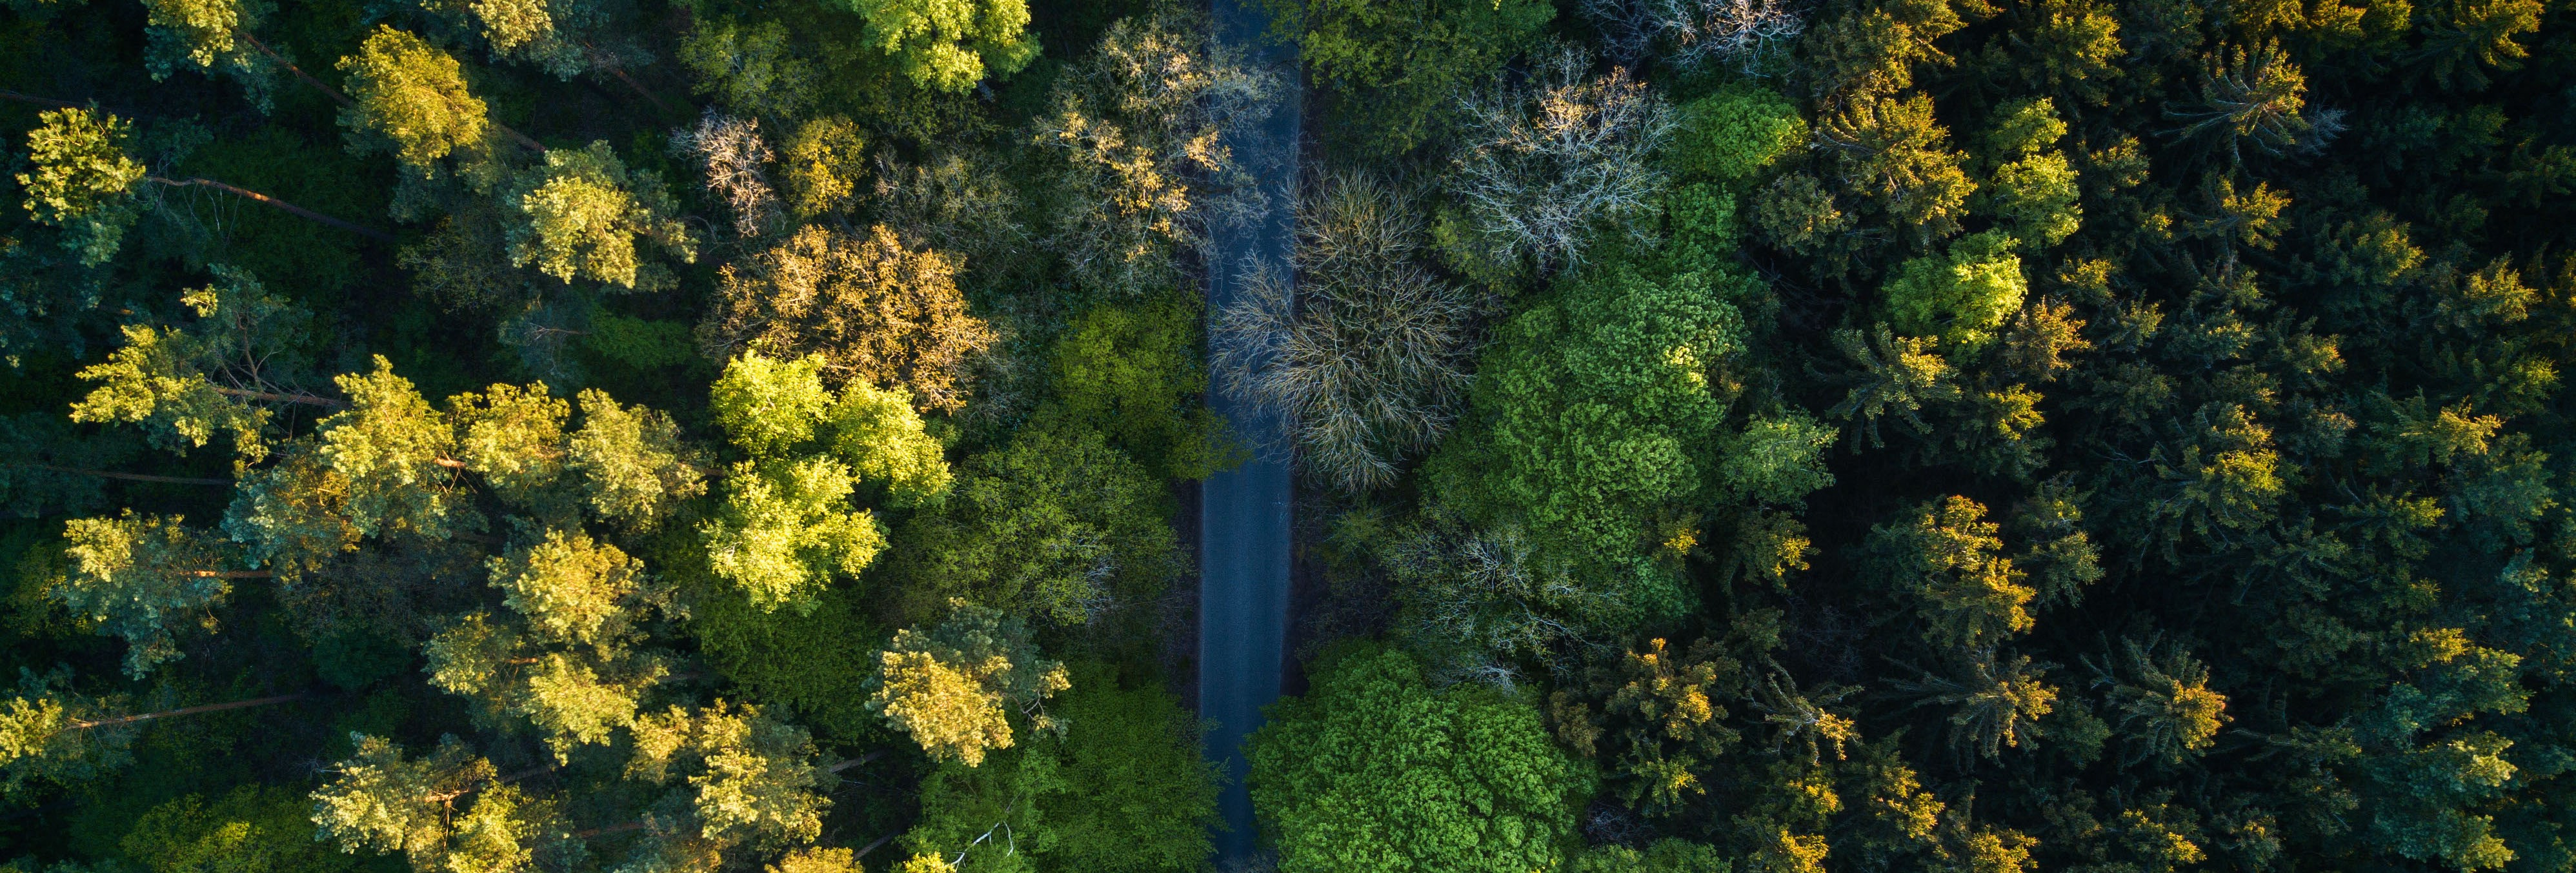 The Drones That Plant Trees and Deliver Profits - Nexus Media